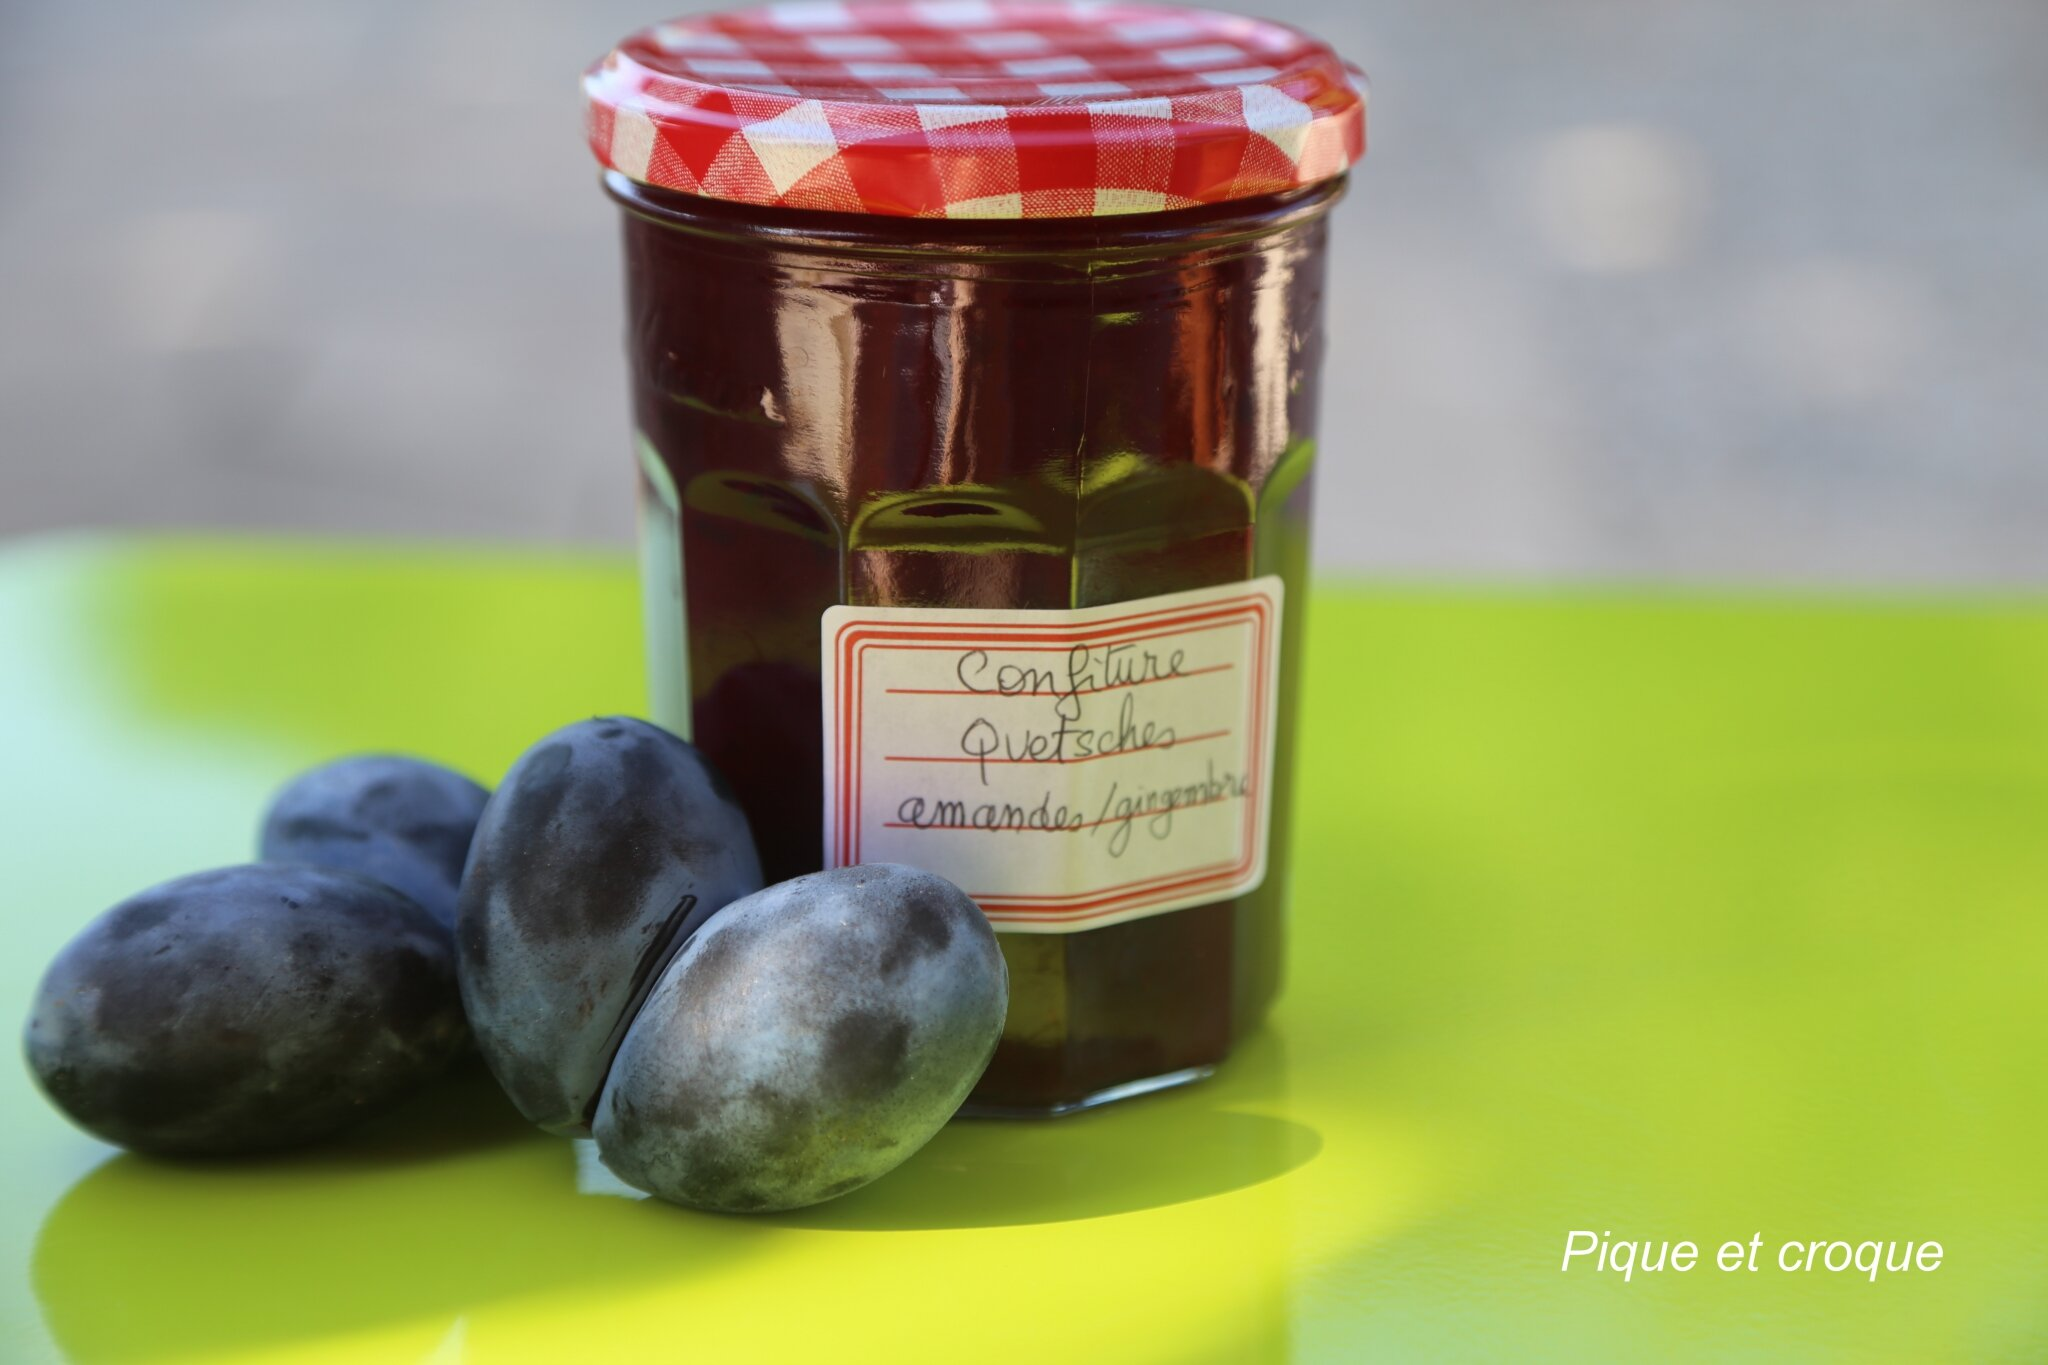 confiture figues quetsches